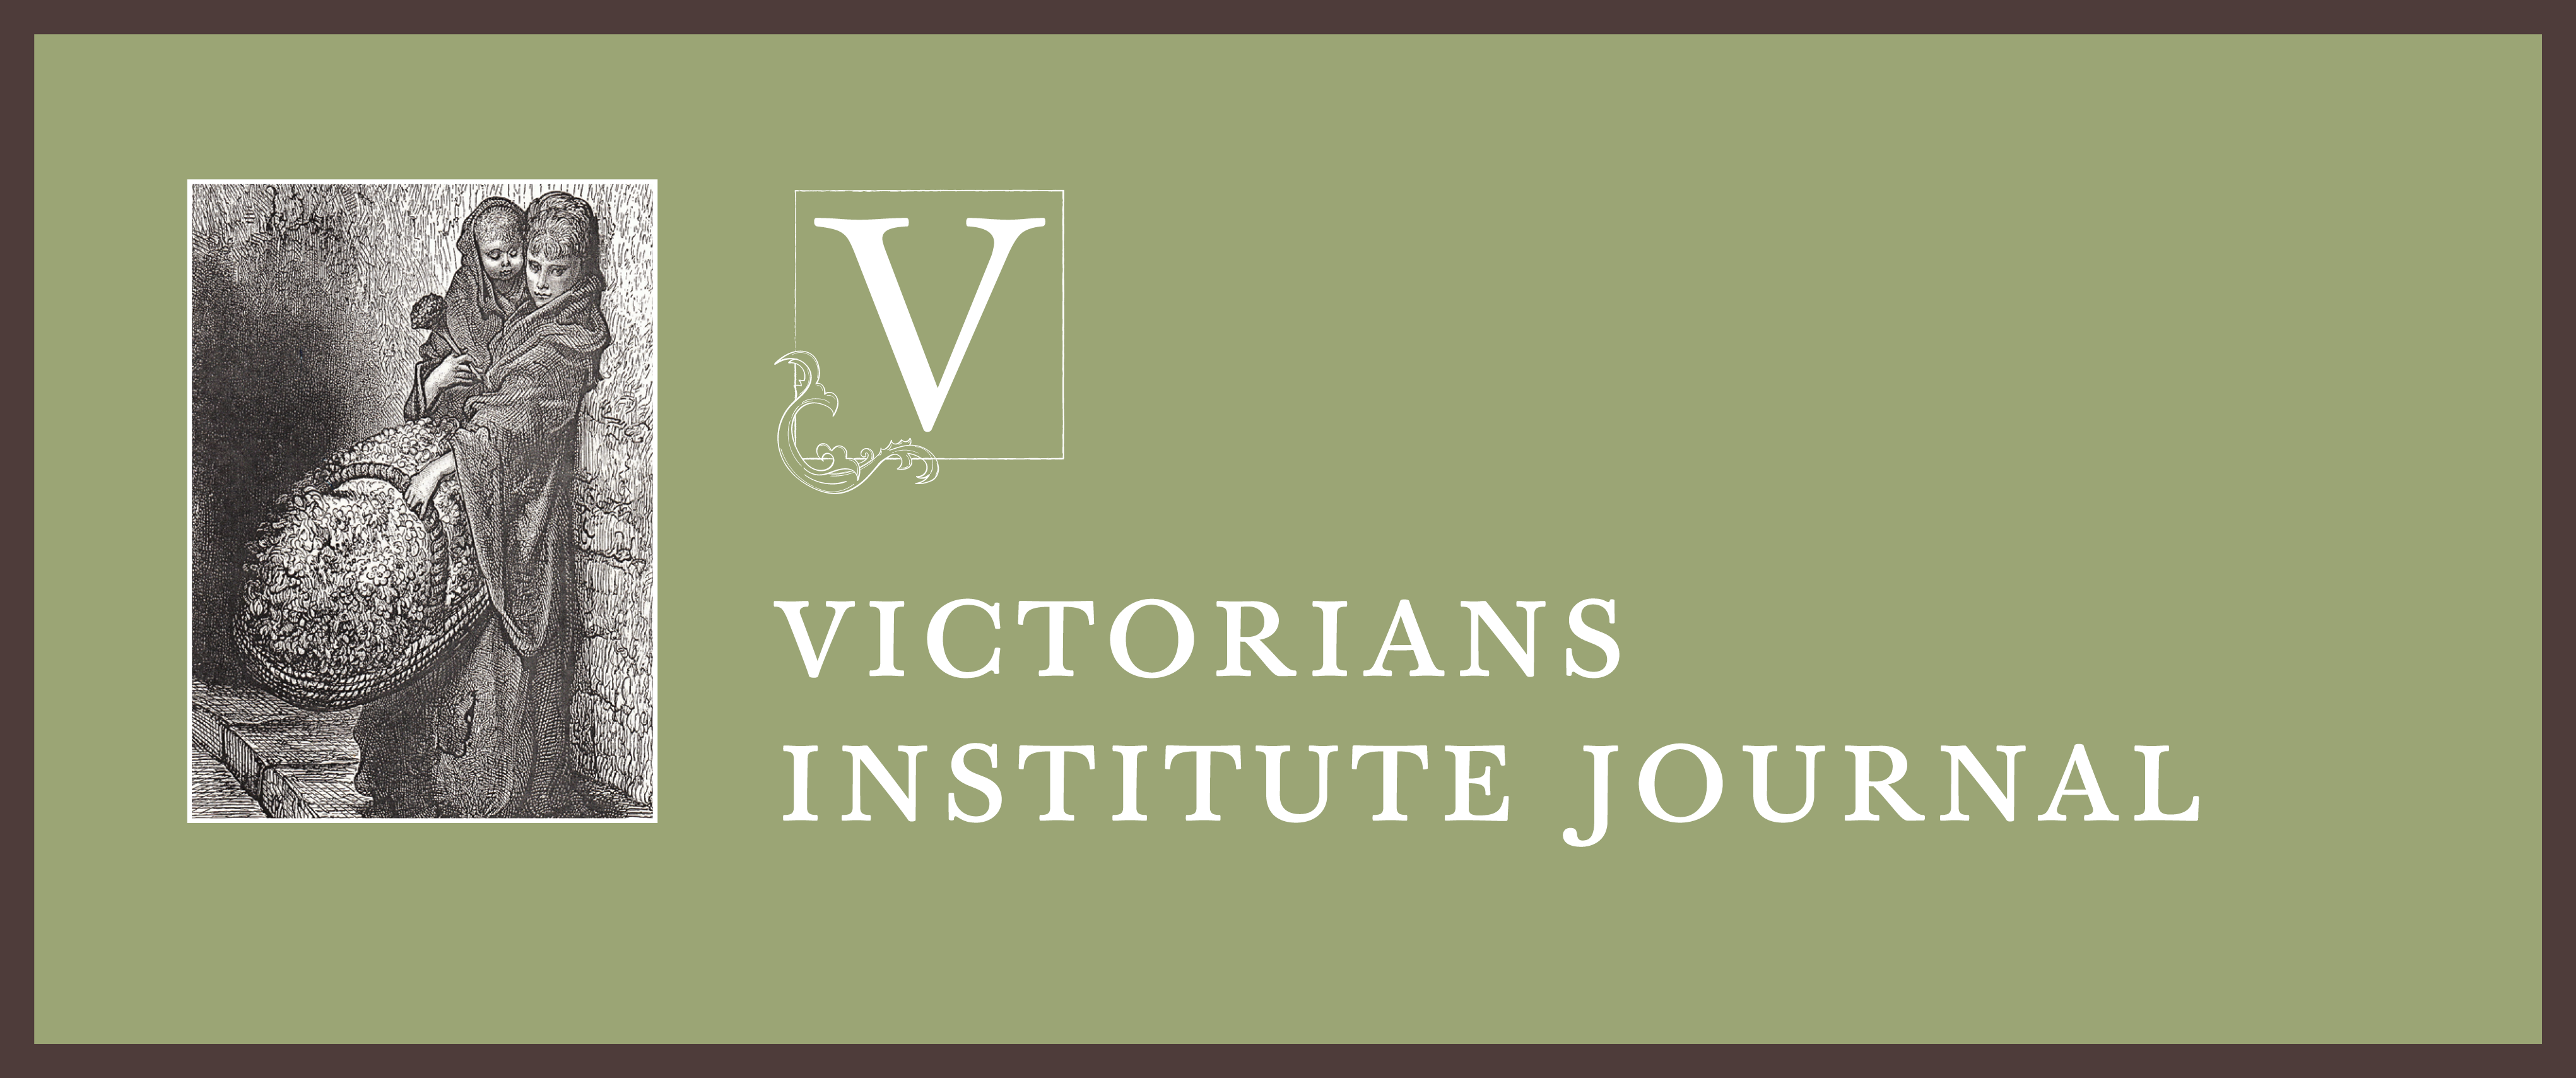 Victorians Institute Journal